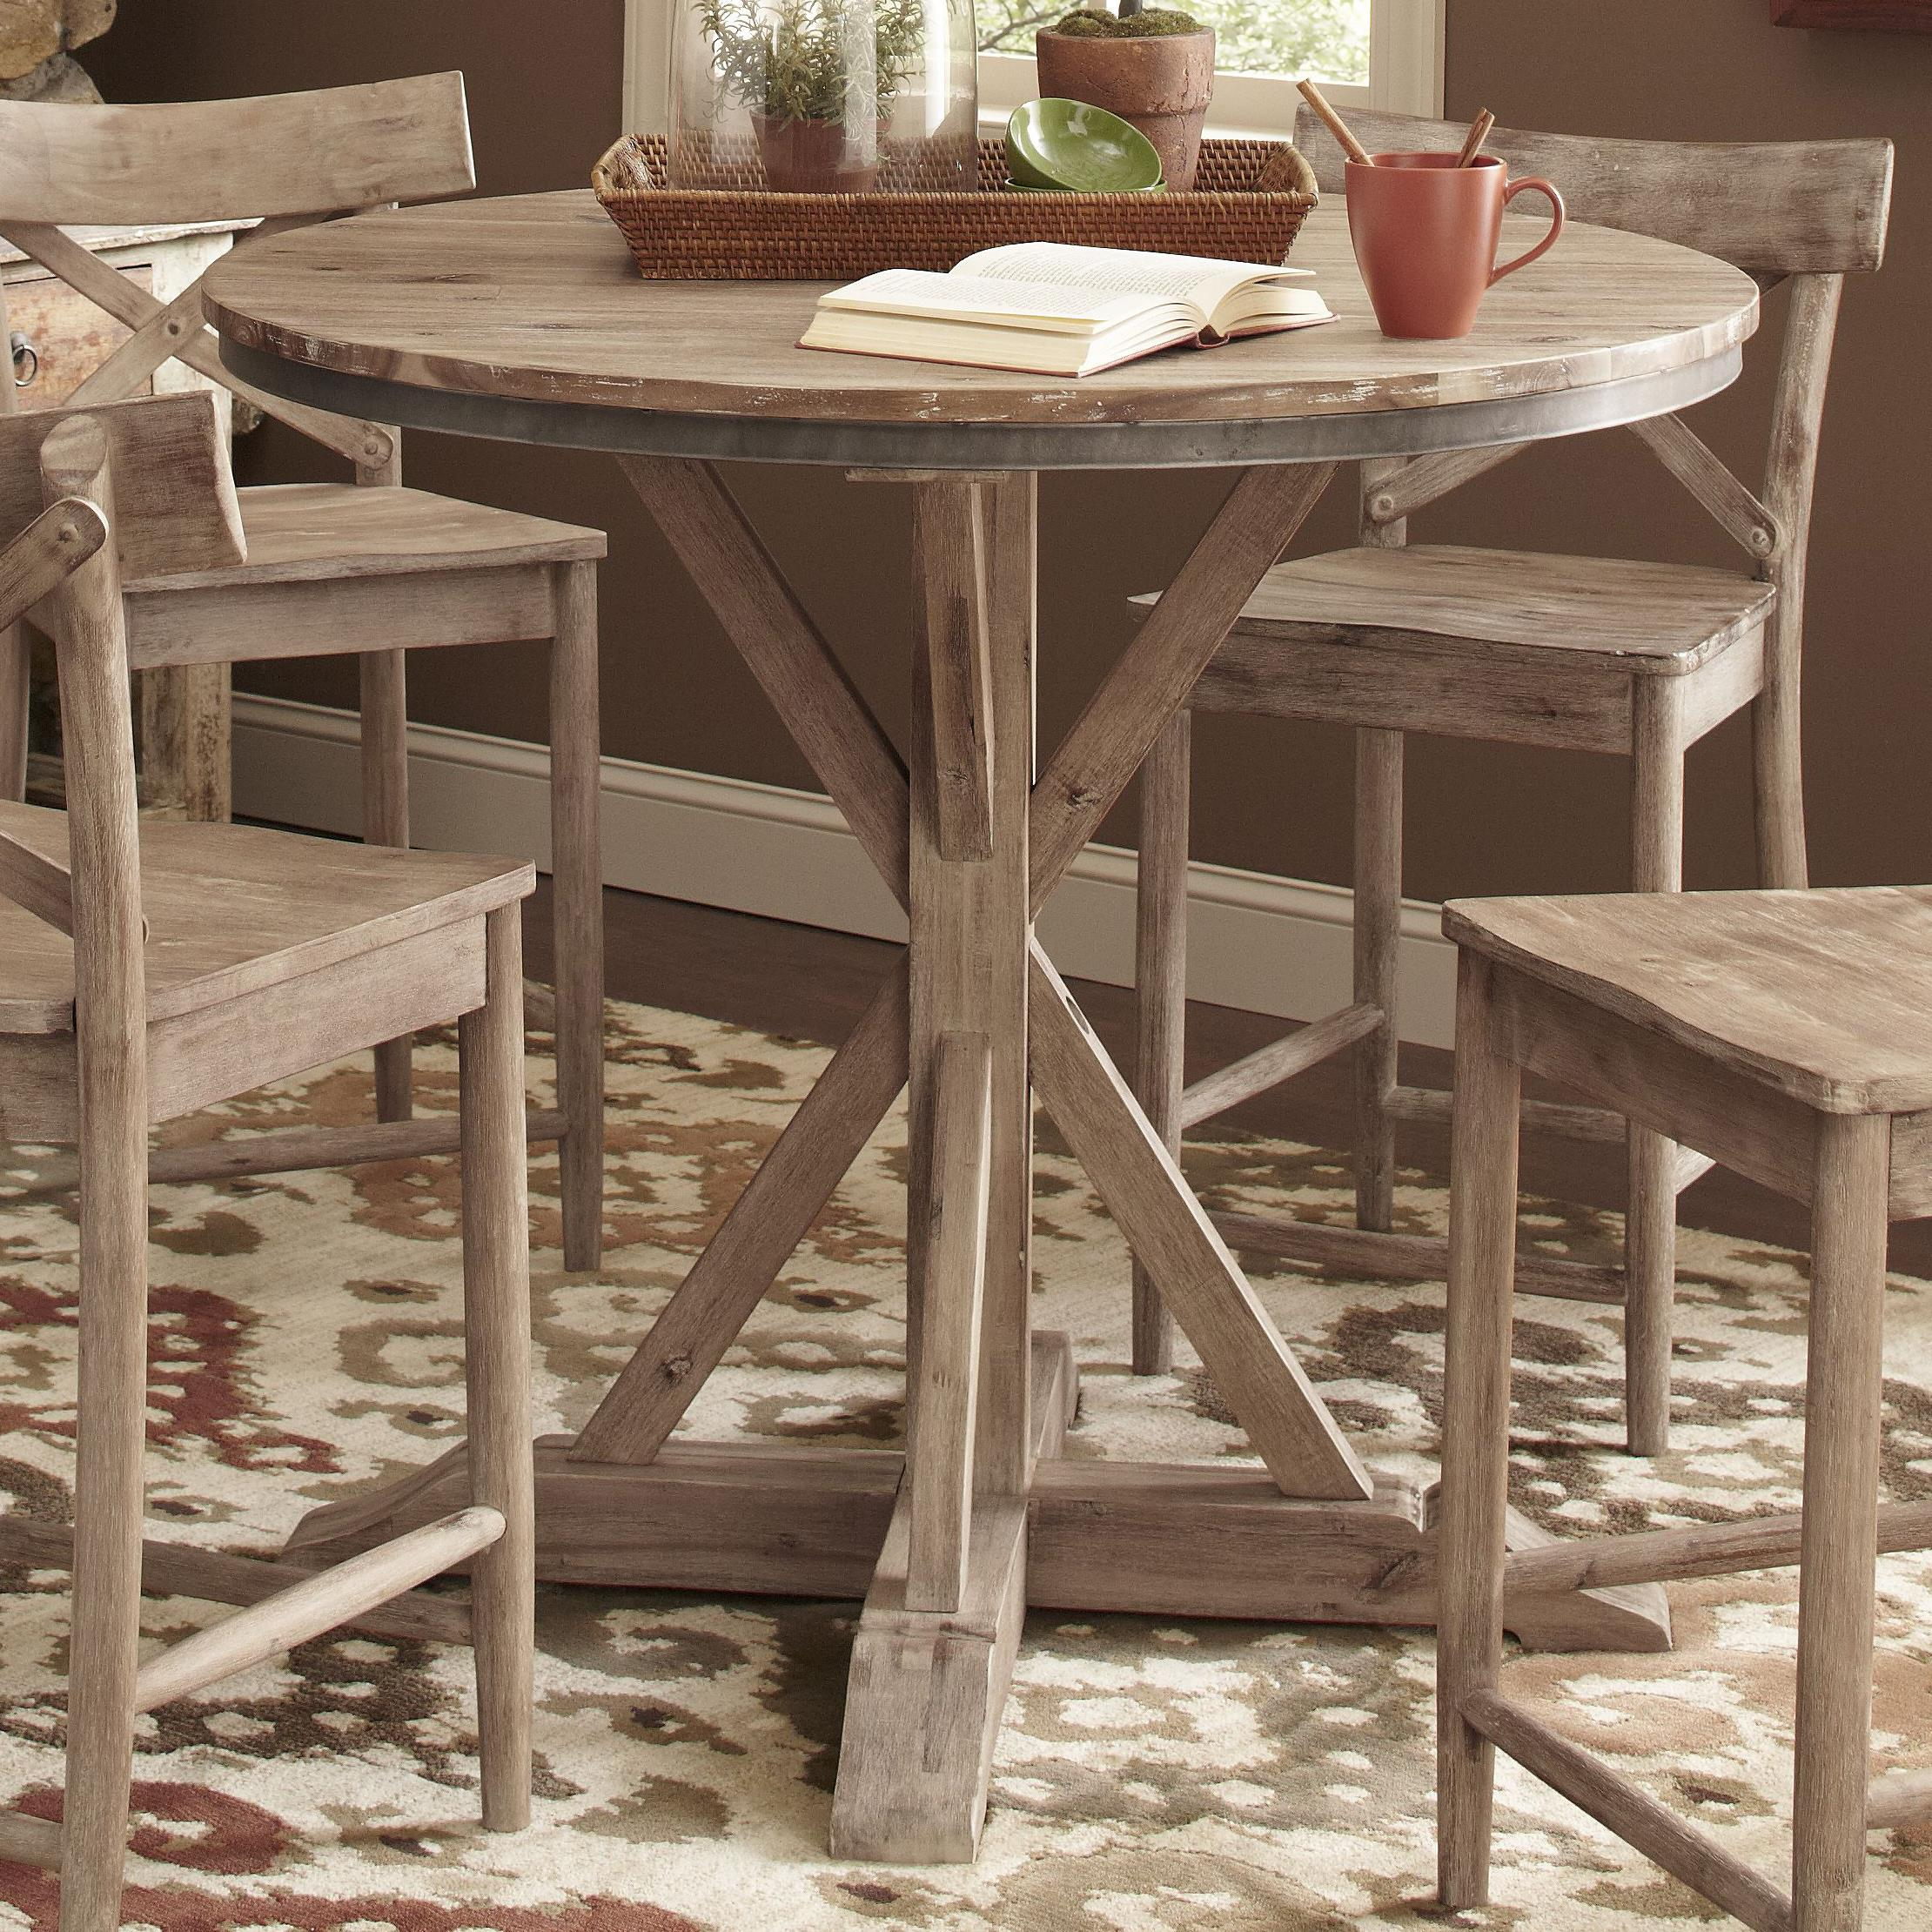 Fabulous Largo Callista Rustic Casual Round Counter Height Pedestal Table  RY51